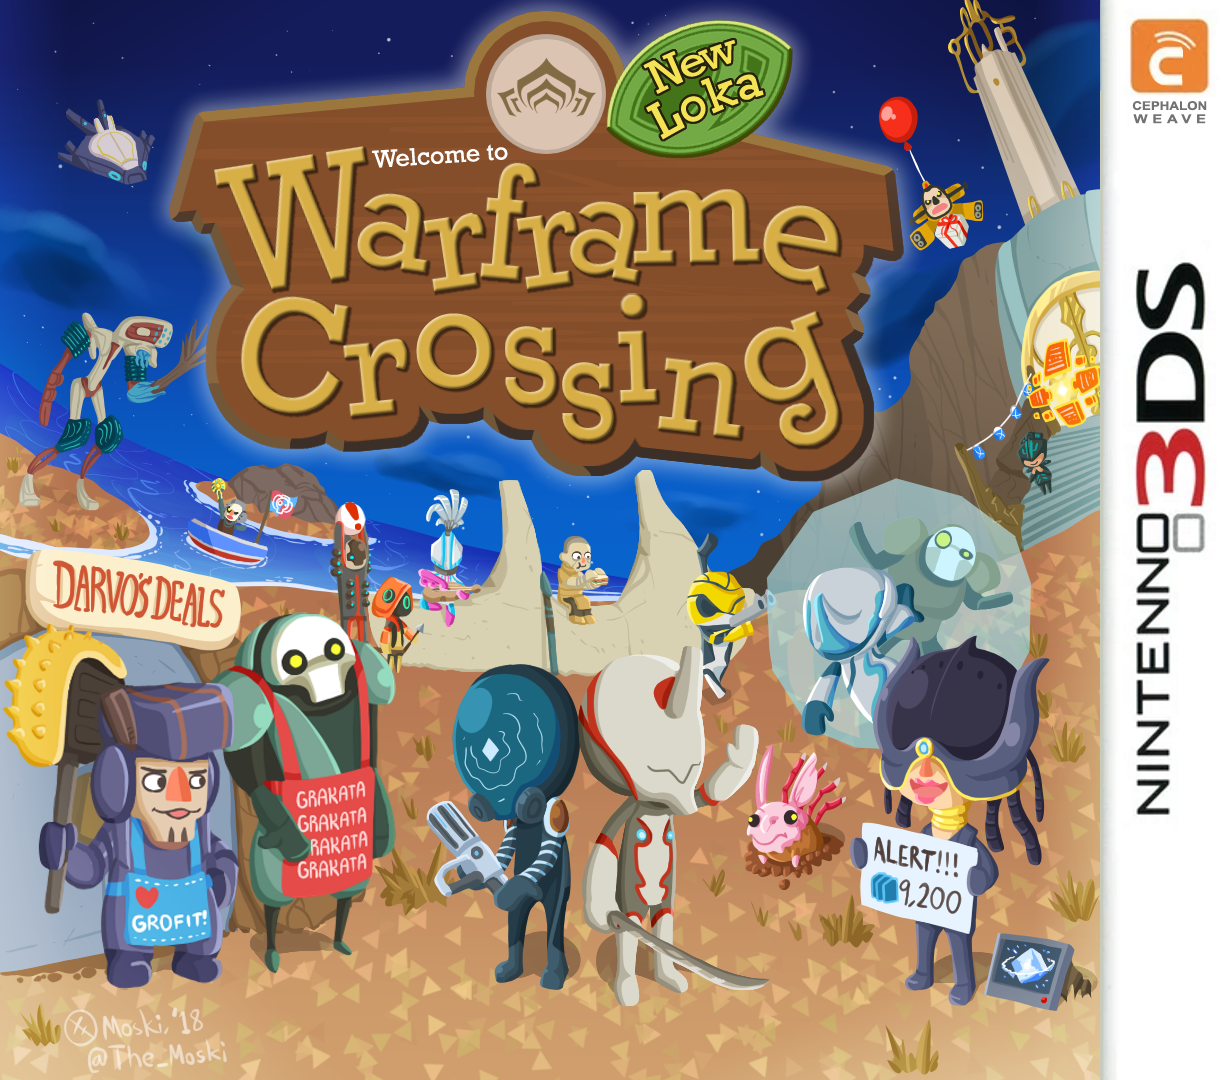 Waframe Crossing: New Loka (Warframe Edition) by Memoski